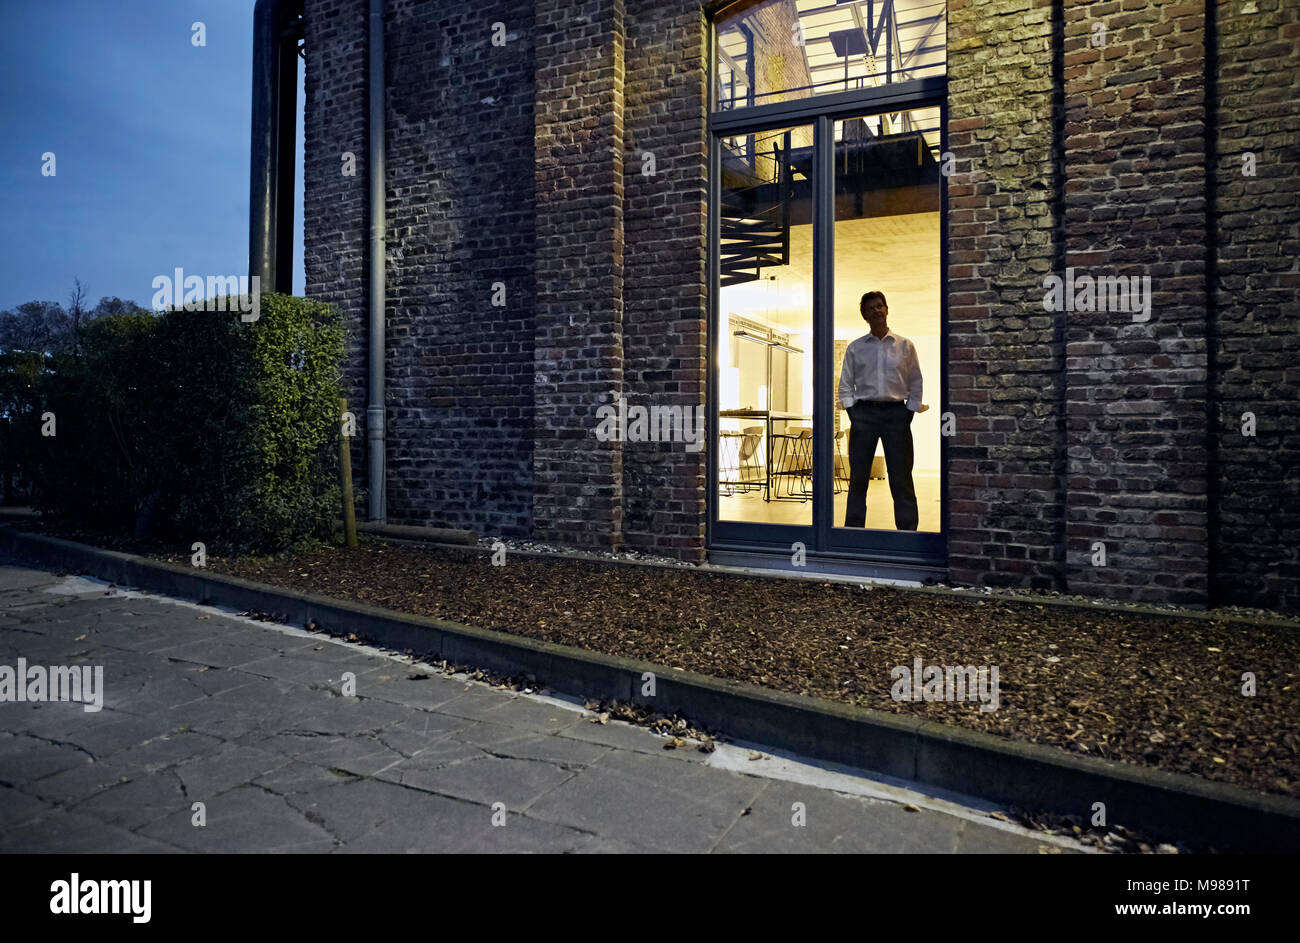 Exterior view of man standing at window of modern building at night - Stock Image